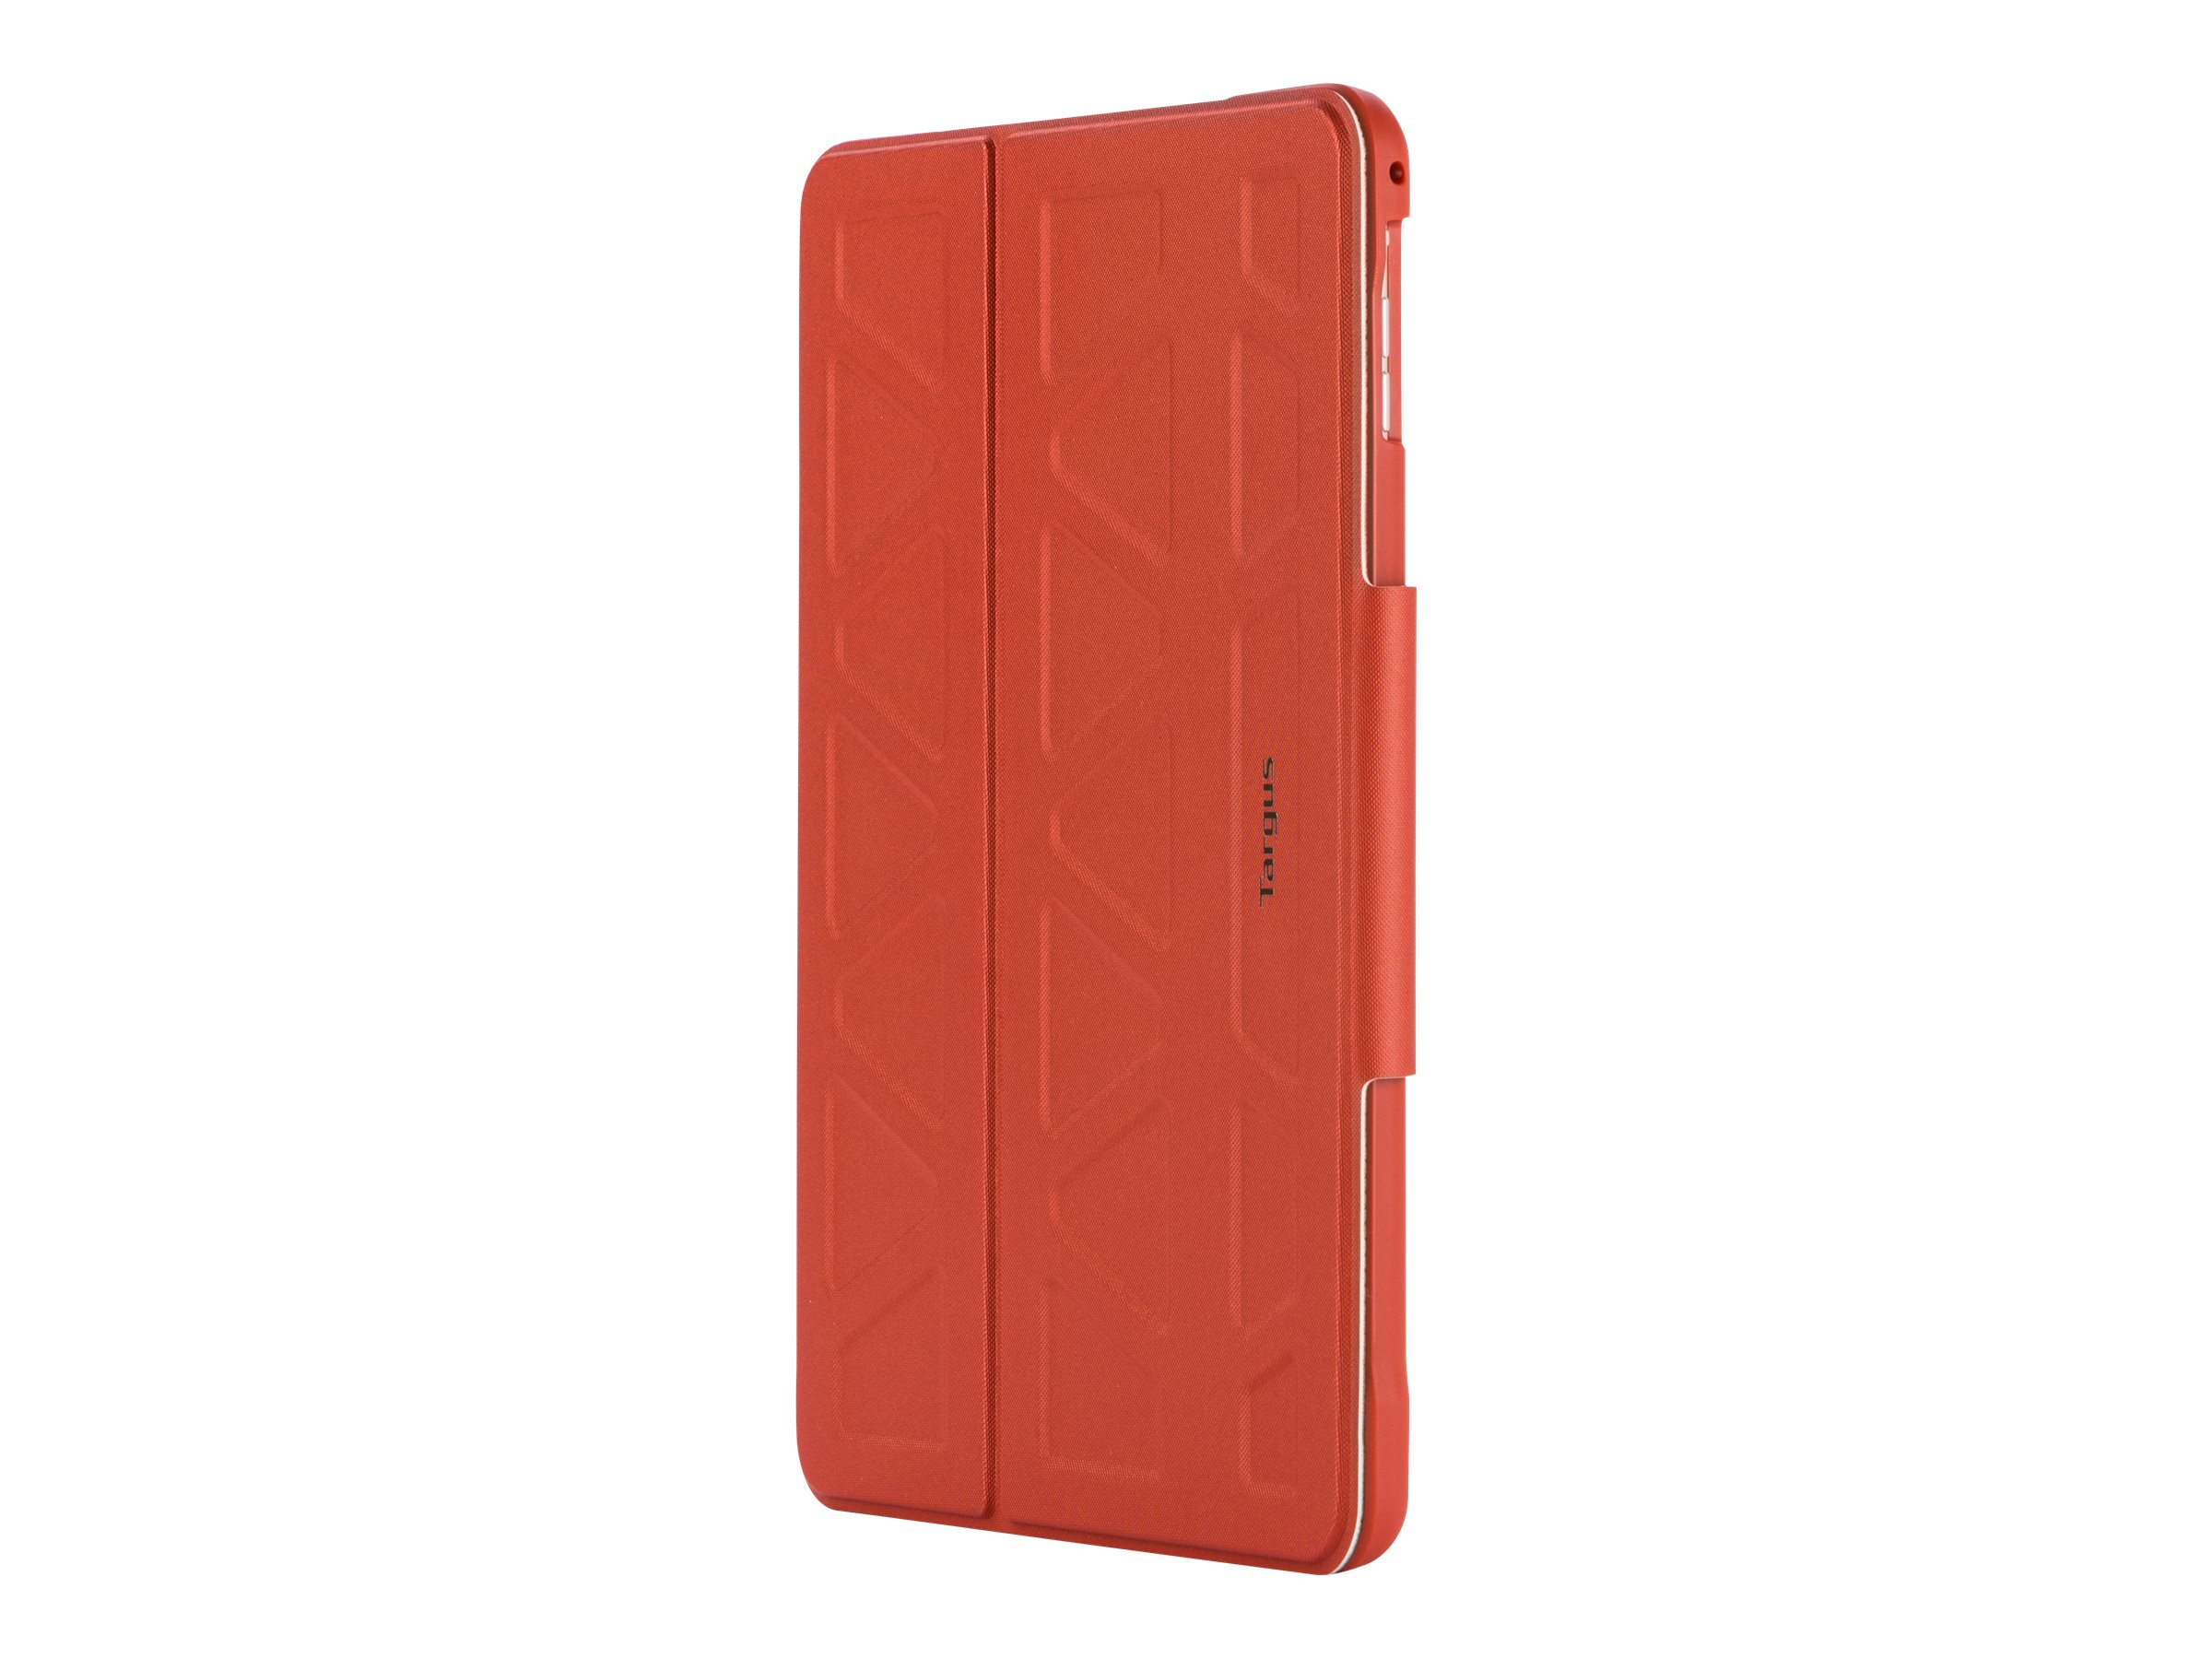 Targus 3D Protection Case for iPad (5th gen./6th gen.), iPad Pro (9.7-inch), iPad Air 2, and iPad Air, Red - flip cover…